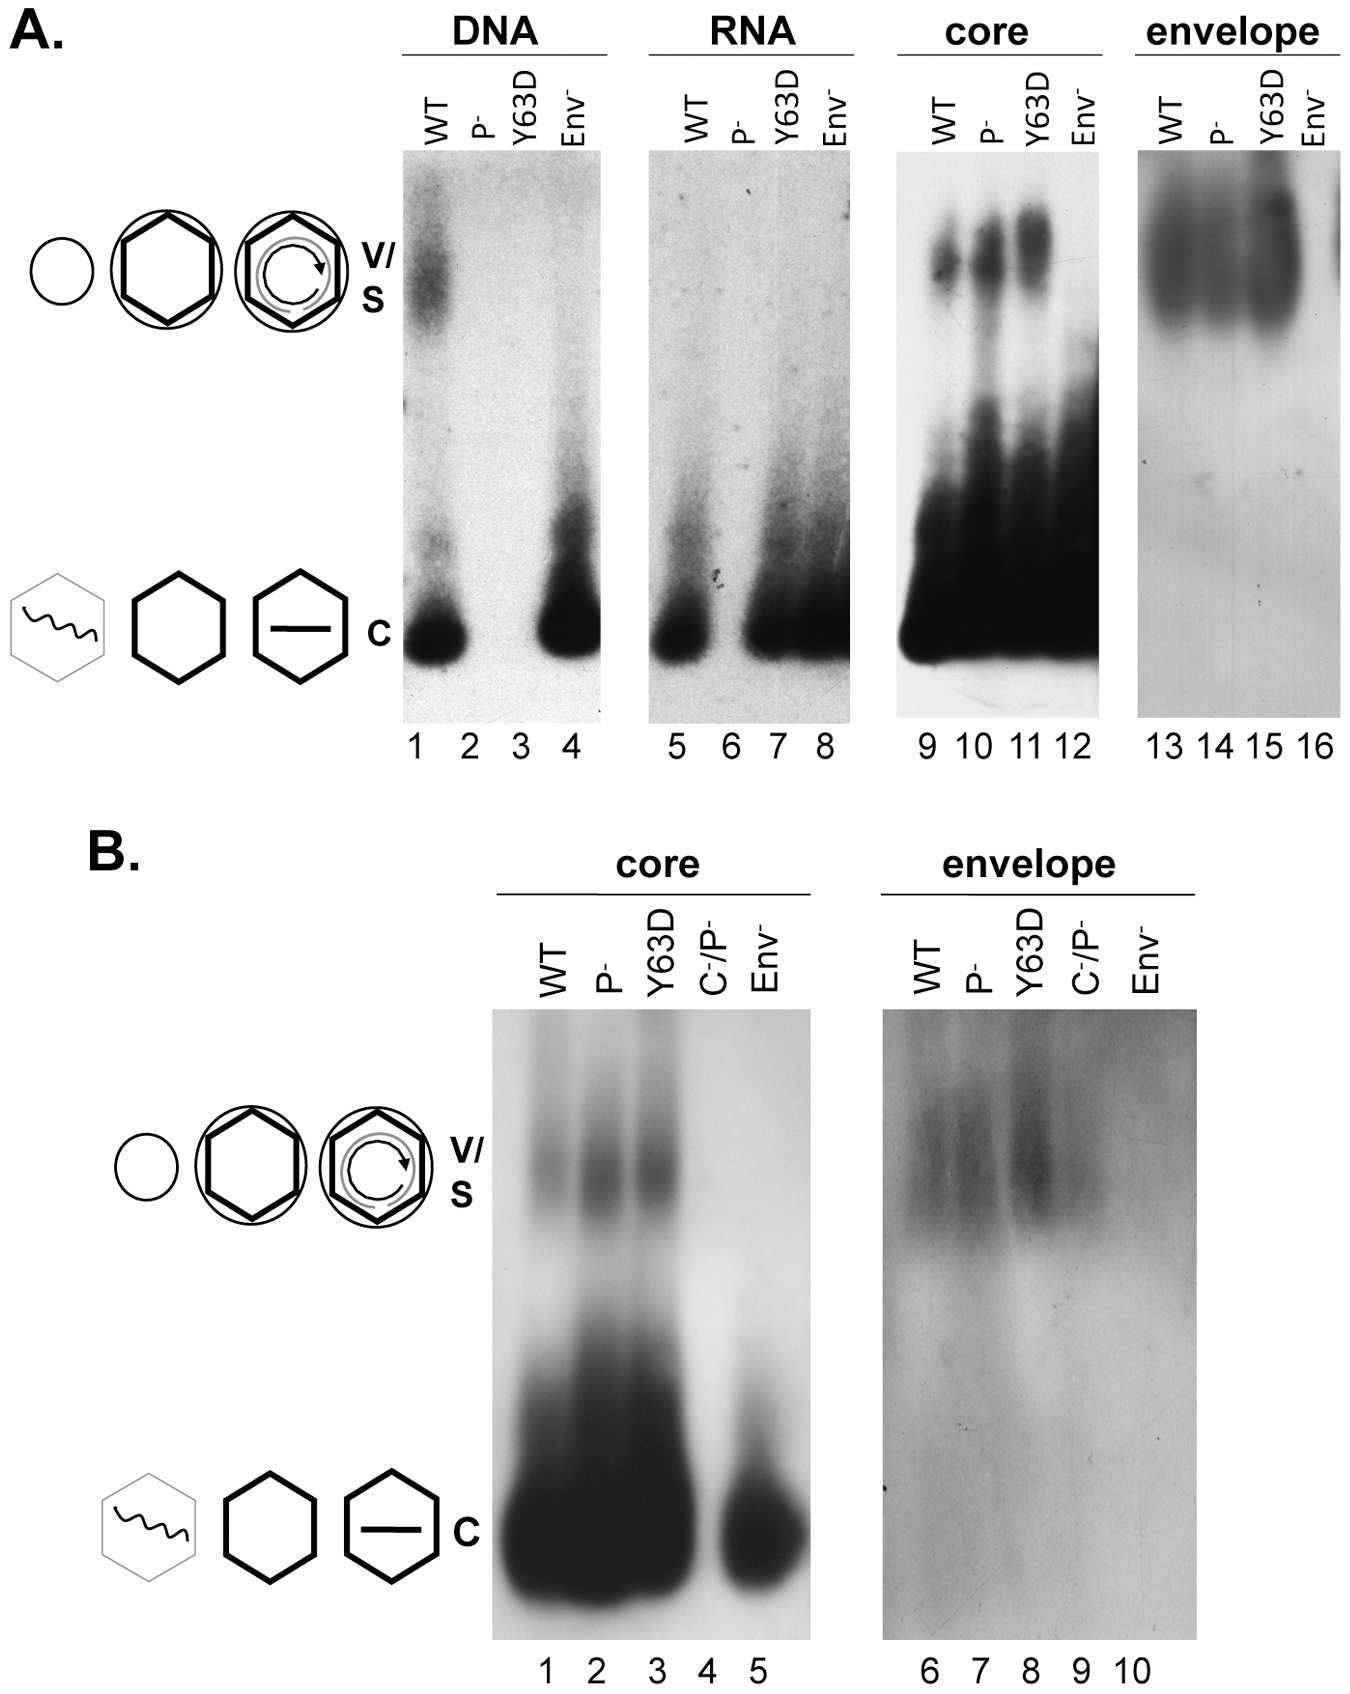 Analyses of HBV virion secretion by native agarose gel electrophoresis.